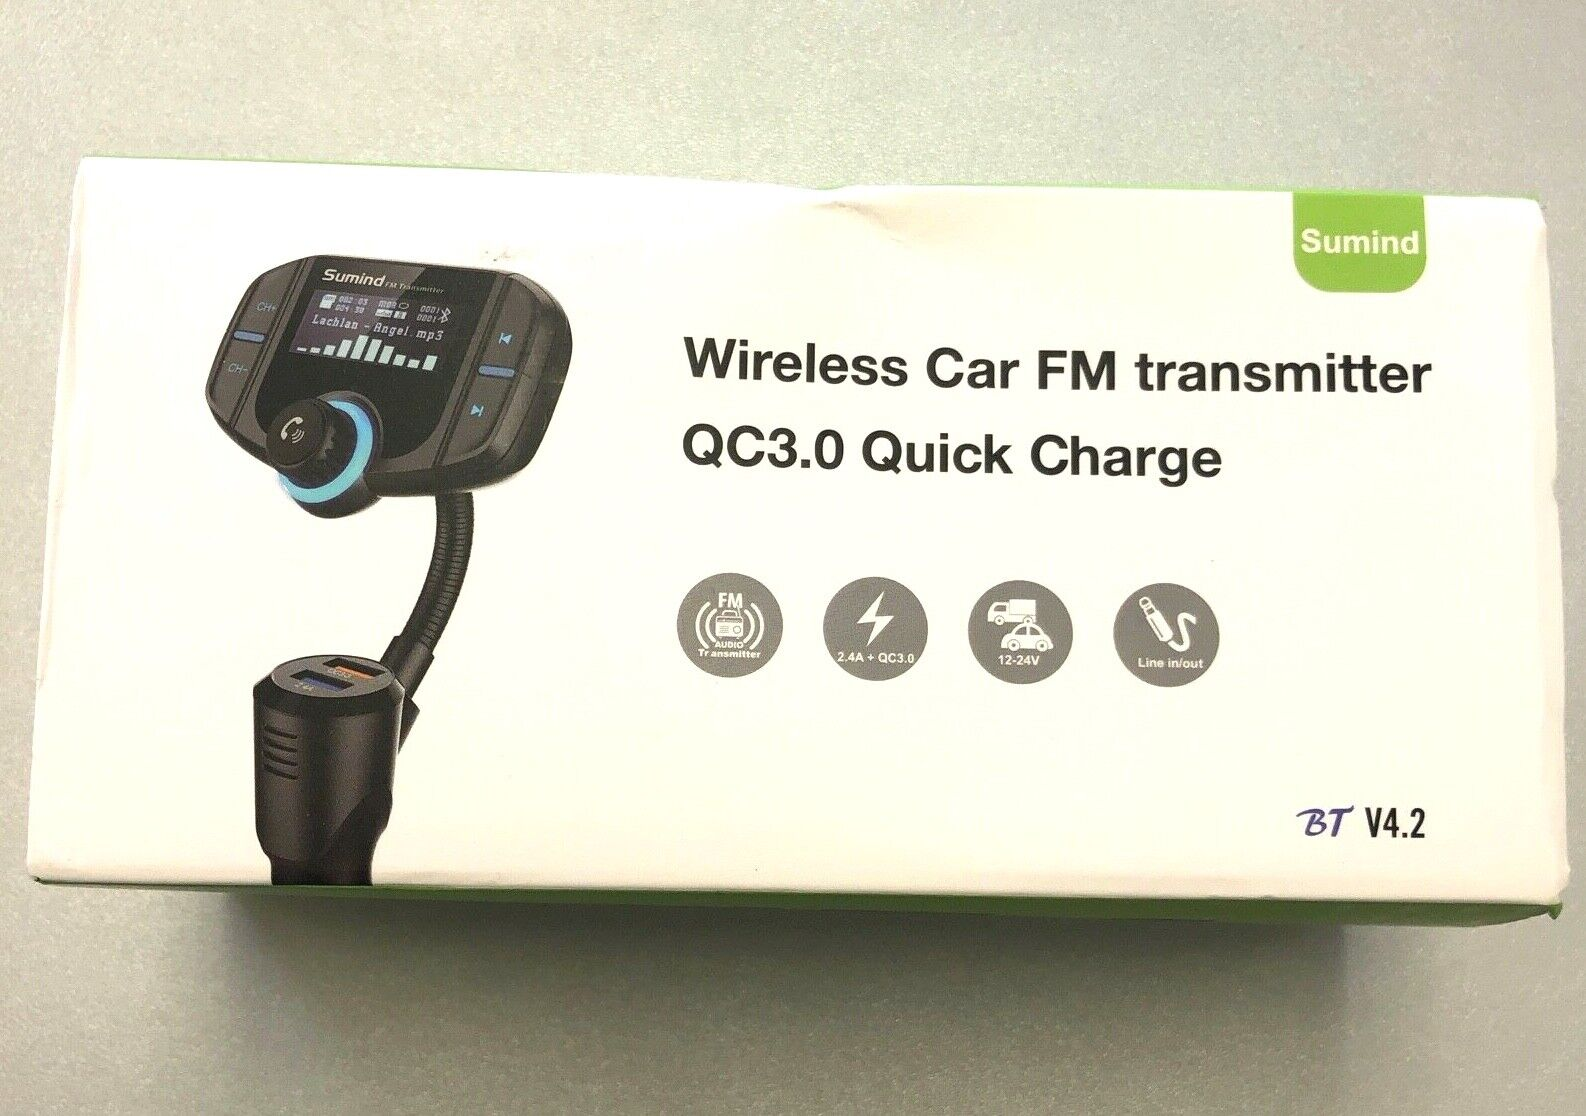 Sumind Wireless Car FM Transmitter QC3.0 Quick Charge